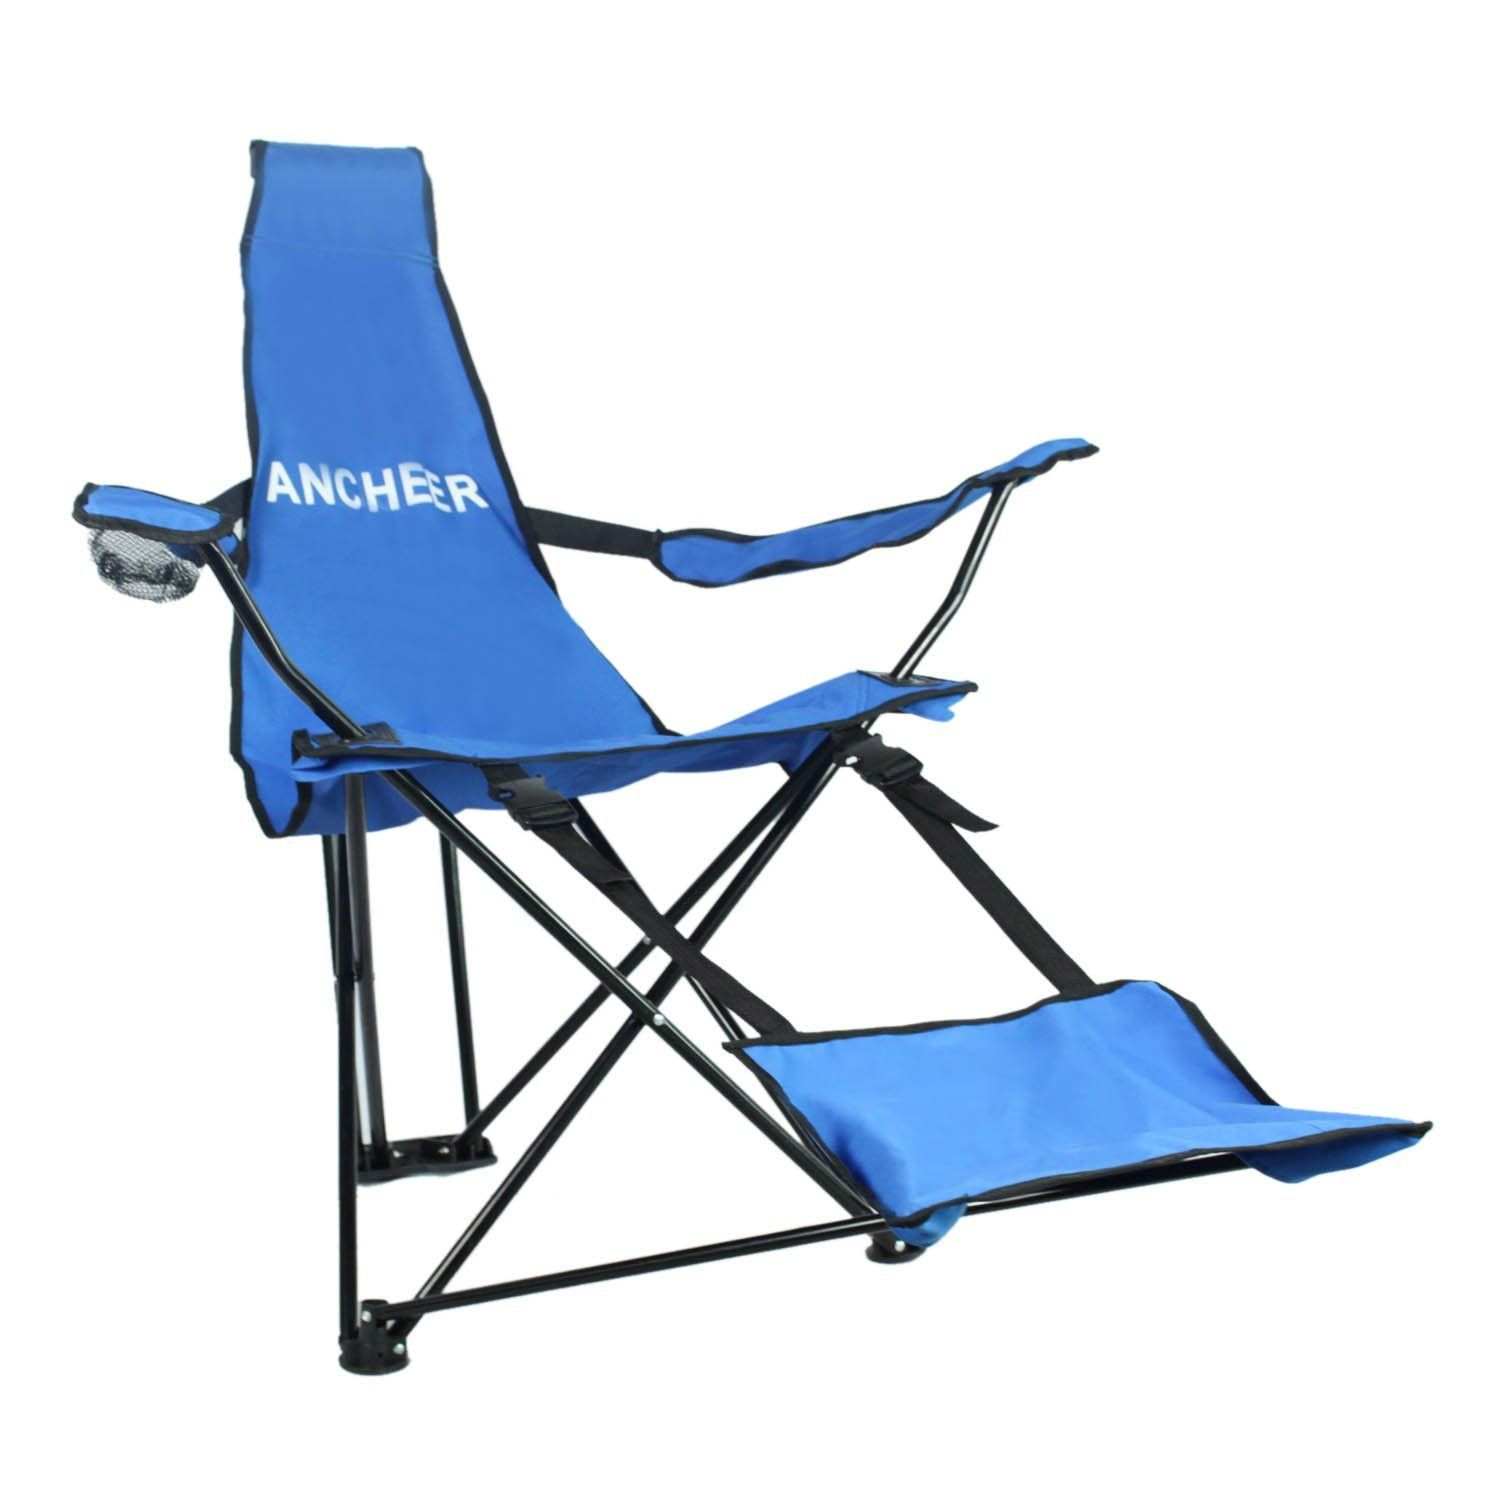 Ancheer Portable Folding Tripod Recliner Escape Chair With Armrests Detachable Footrest And Cup Holder For Camping Furniture Outdoor Chairs Camping And Hiking